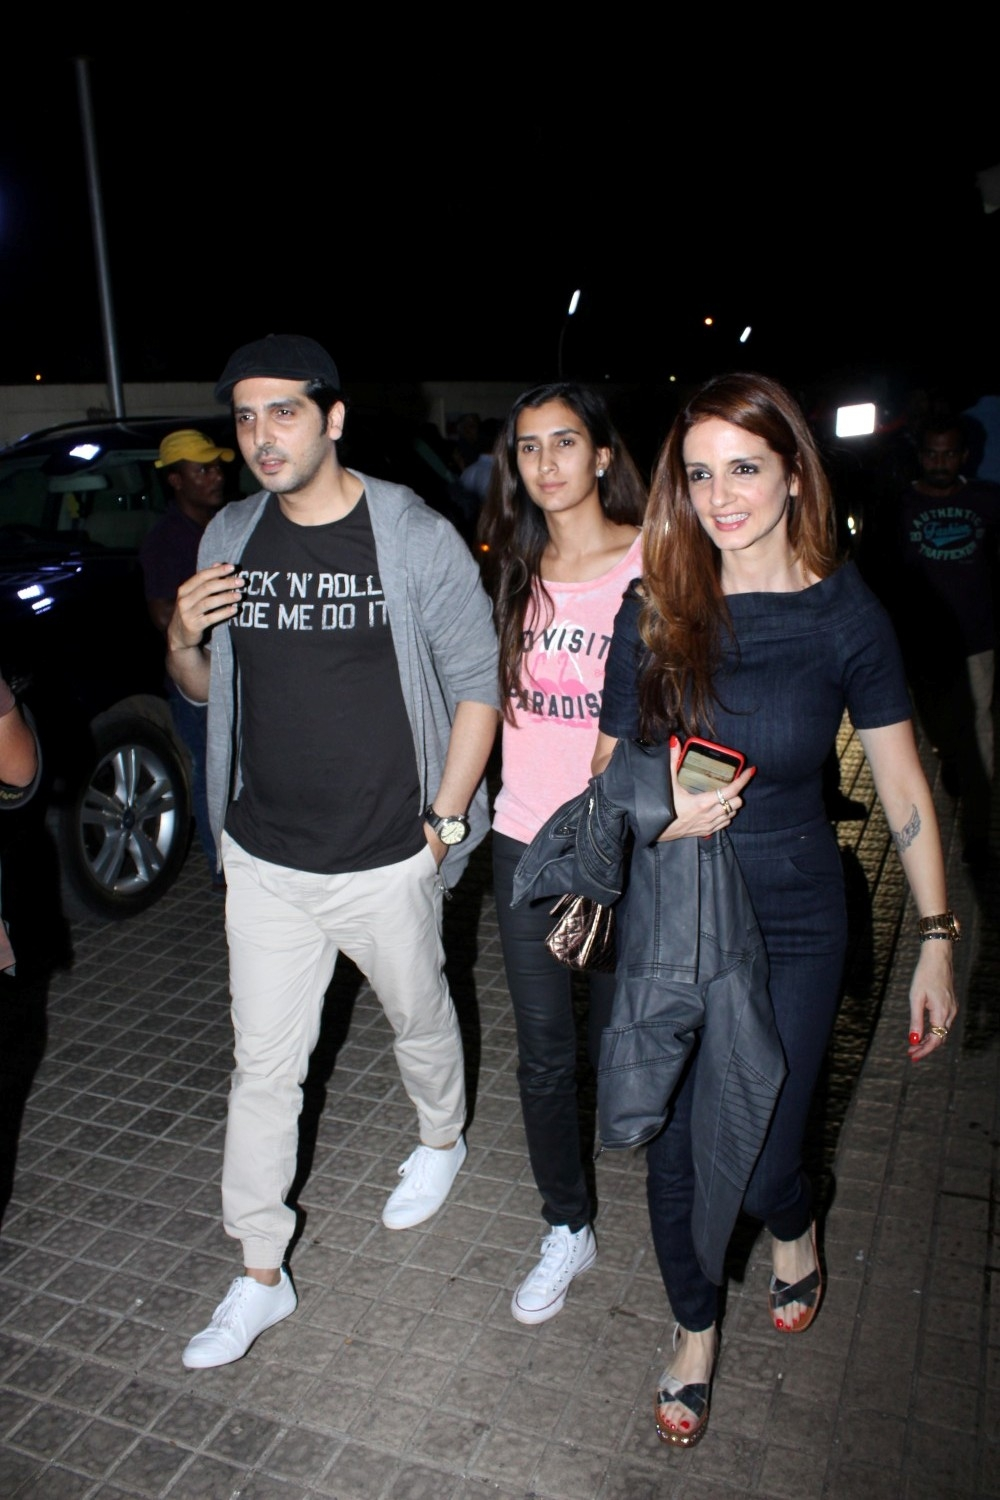 Mumbai: Actor Zayed Khan, Sussanne Khan during special sreening of film Kaabil in Mumbai on Jan 22, 2017. (Photo: (IANS)